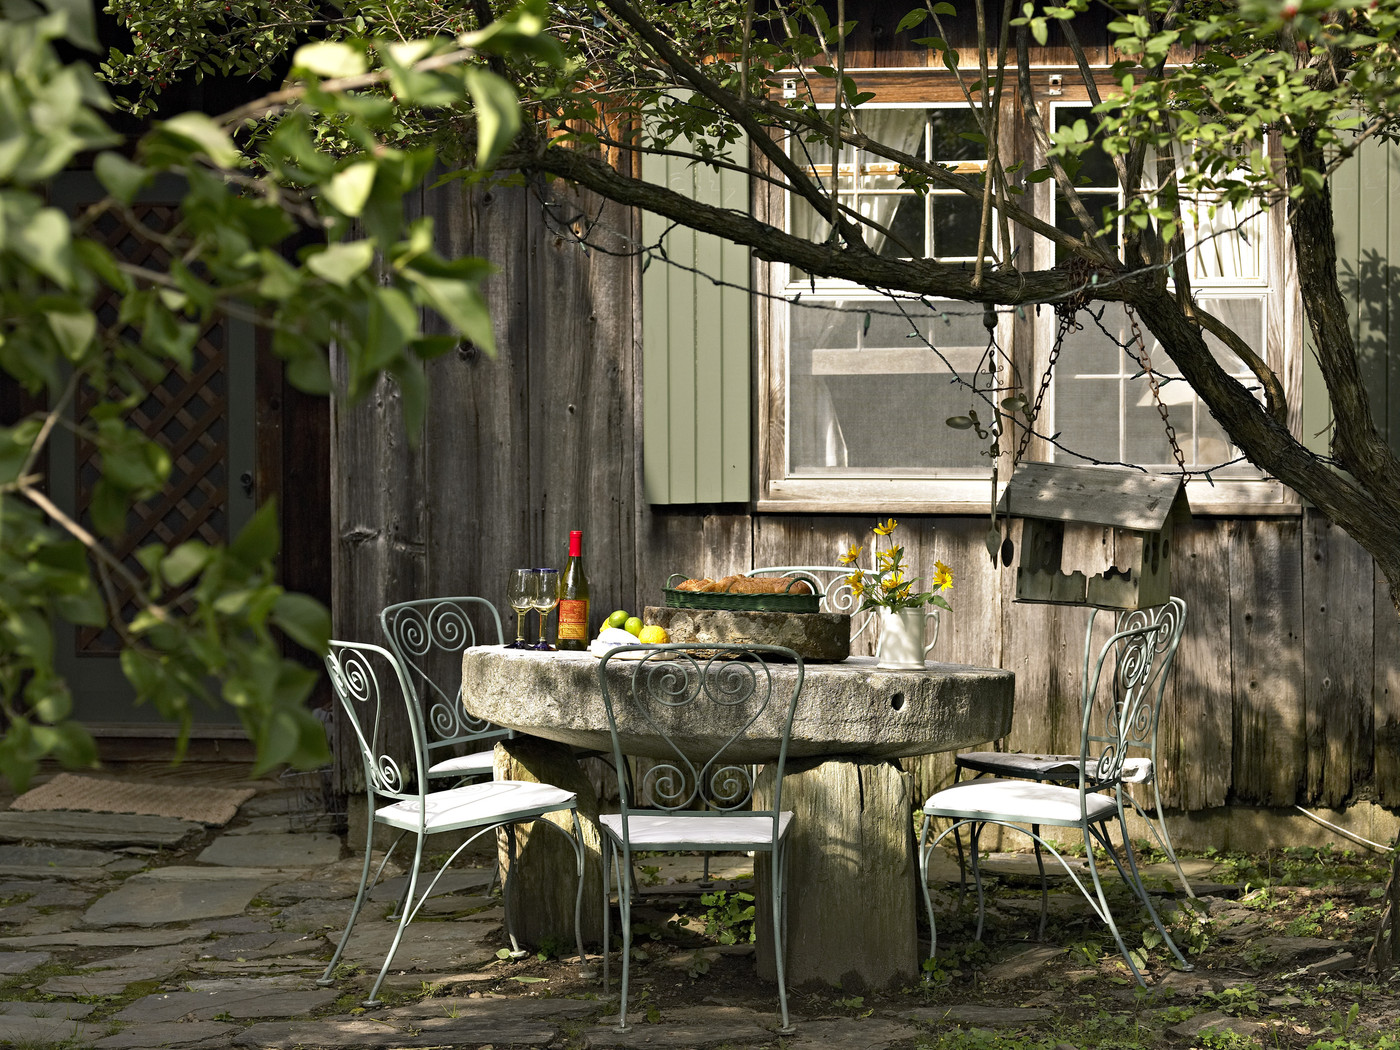 Country Patio - Outdoor Patio Design Ideas - Lonny on Country Patio Ideas id=47291